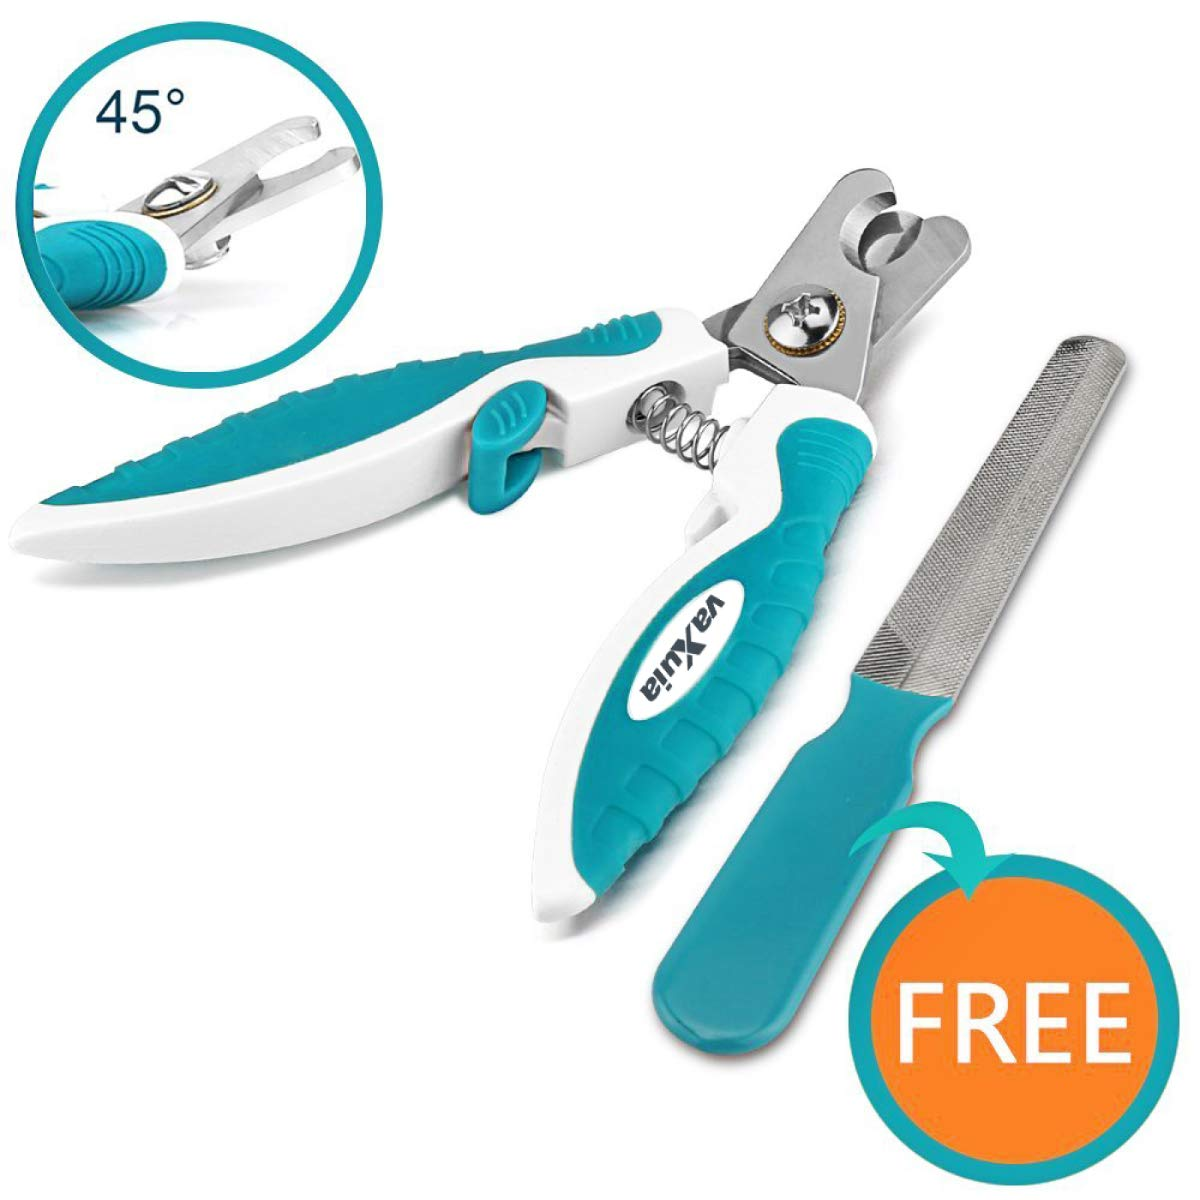 Professional Dog Nail Clippers For Small Medium Large Dog Breeds-With Quick Safety Guard to Avoid Overcutting-Unique 45 ° Tip Blades-Free Nail File Included